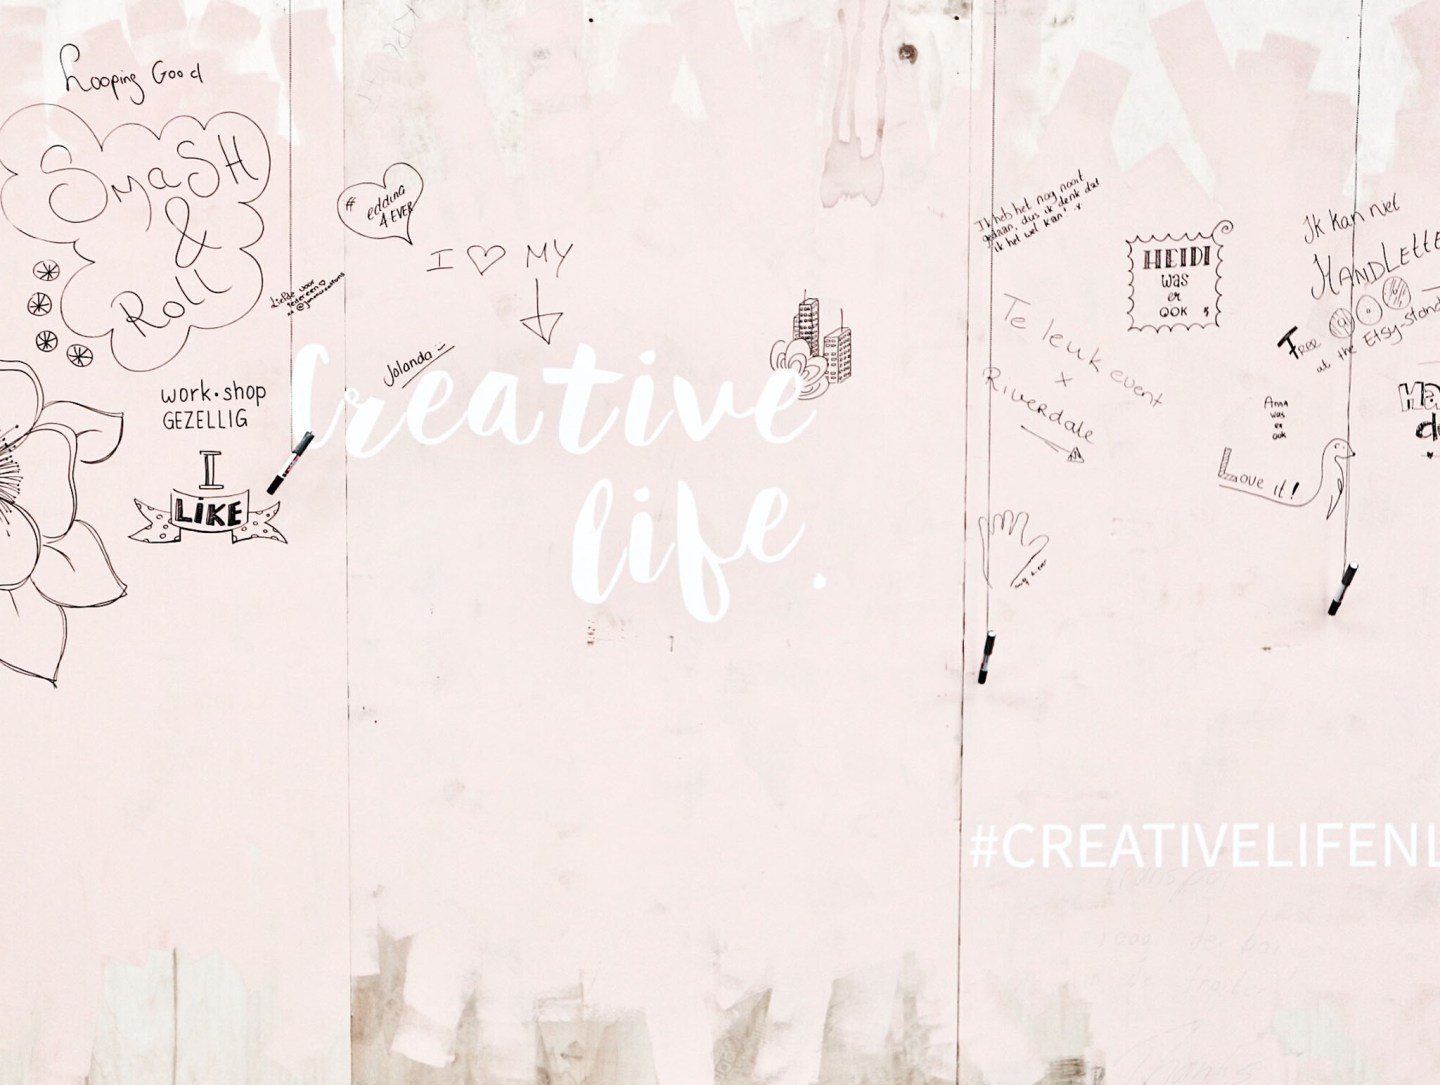 Being Creative Is Not A Hobby, It's A Way Of Life | Event: Creative Life, Utrecht